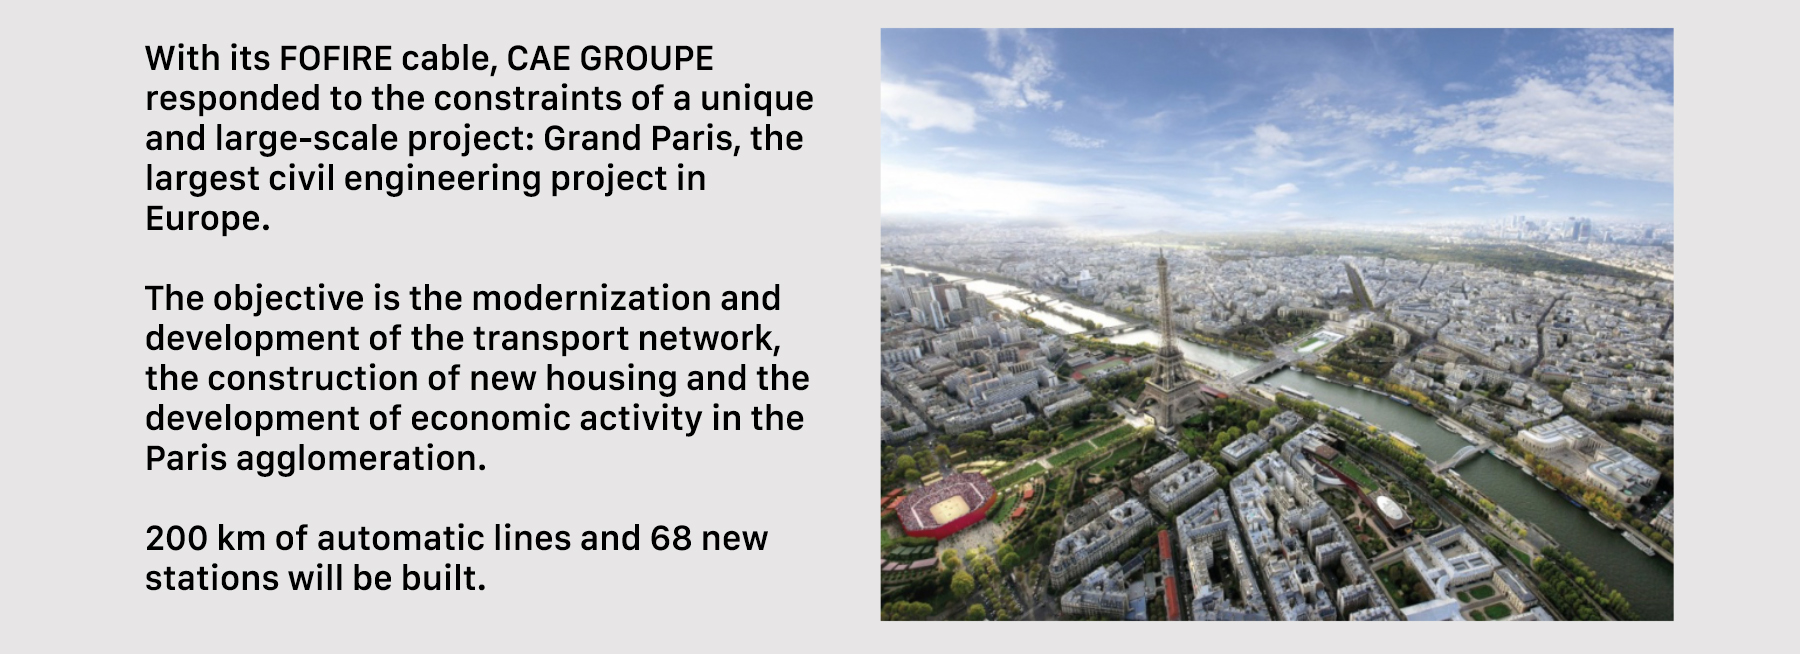 Project CAE groupe